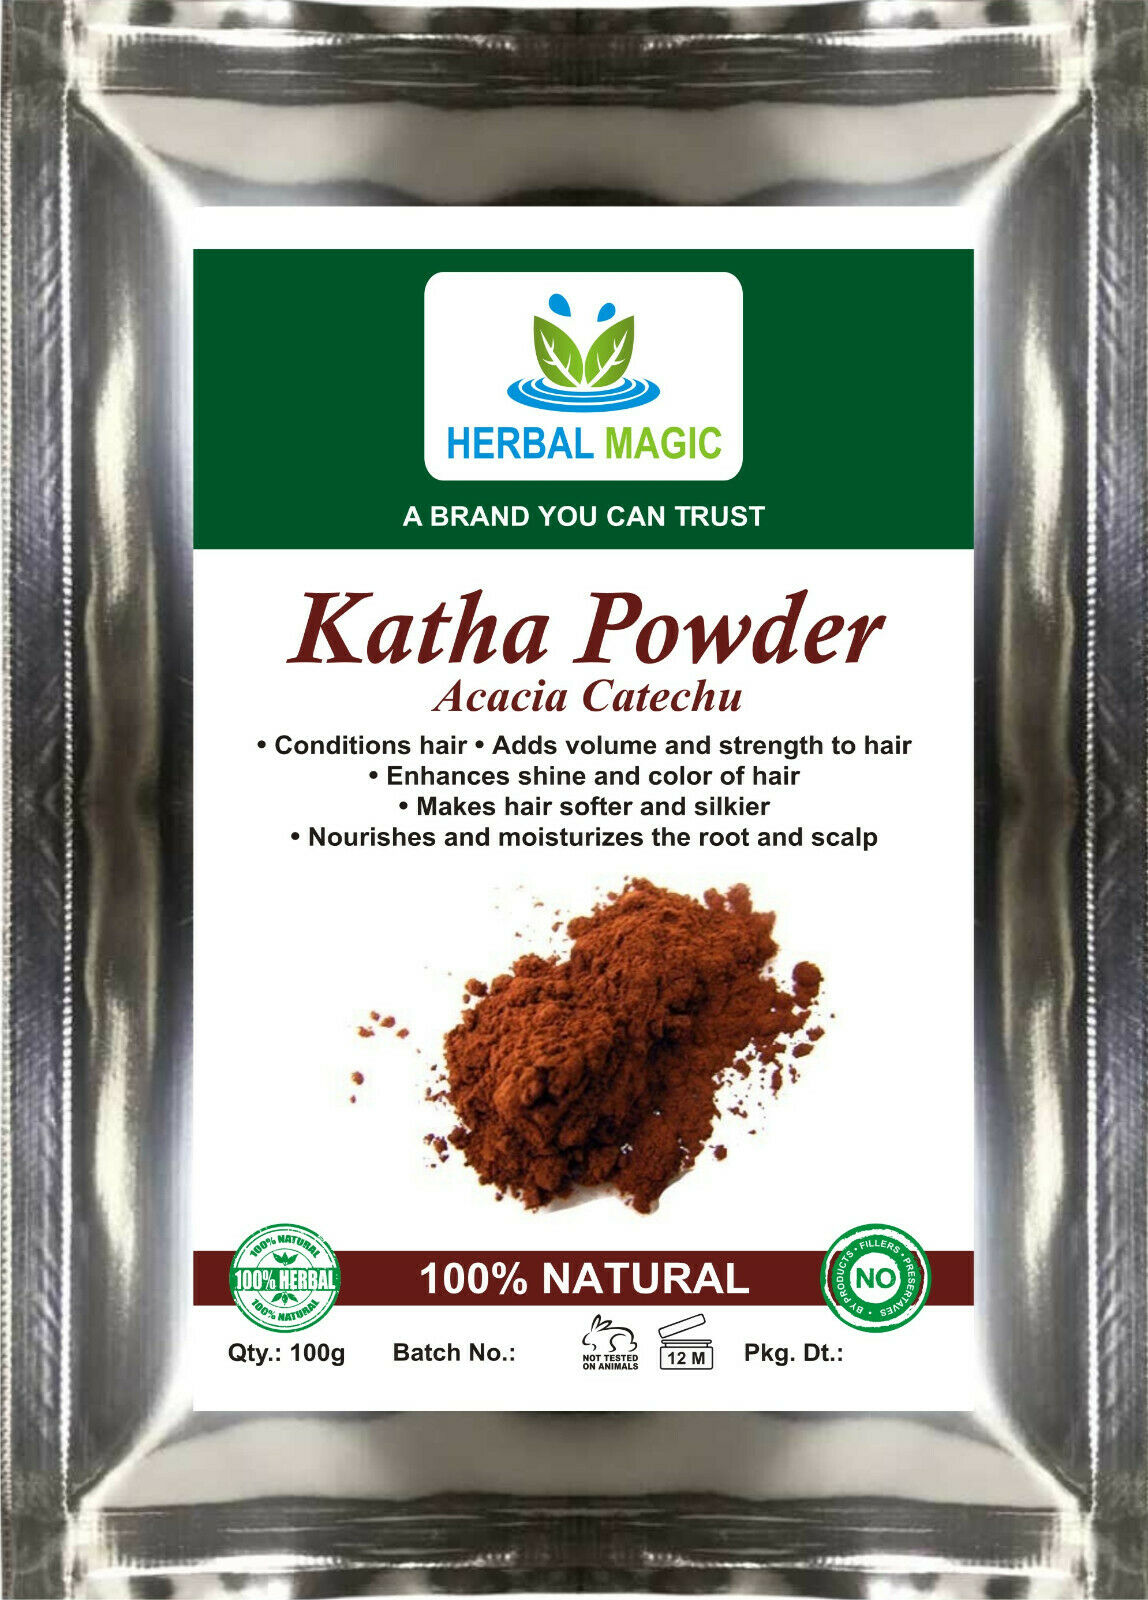 100g Katha Powder(Acacia Catechu) For Hair colour,Conditioner Mix It With Henna